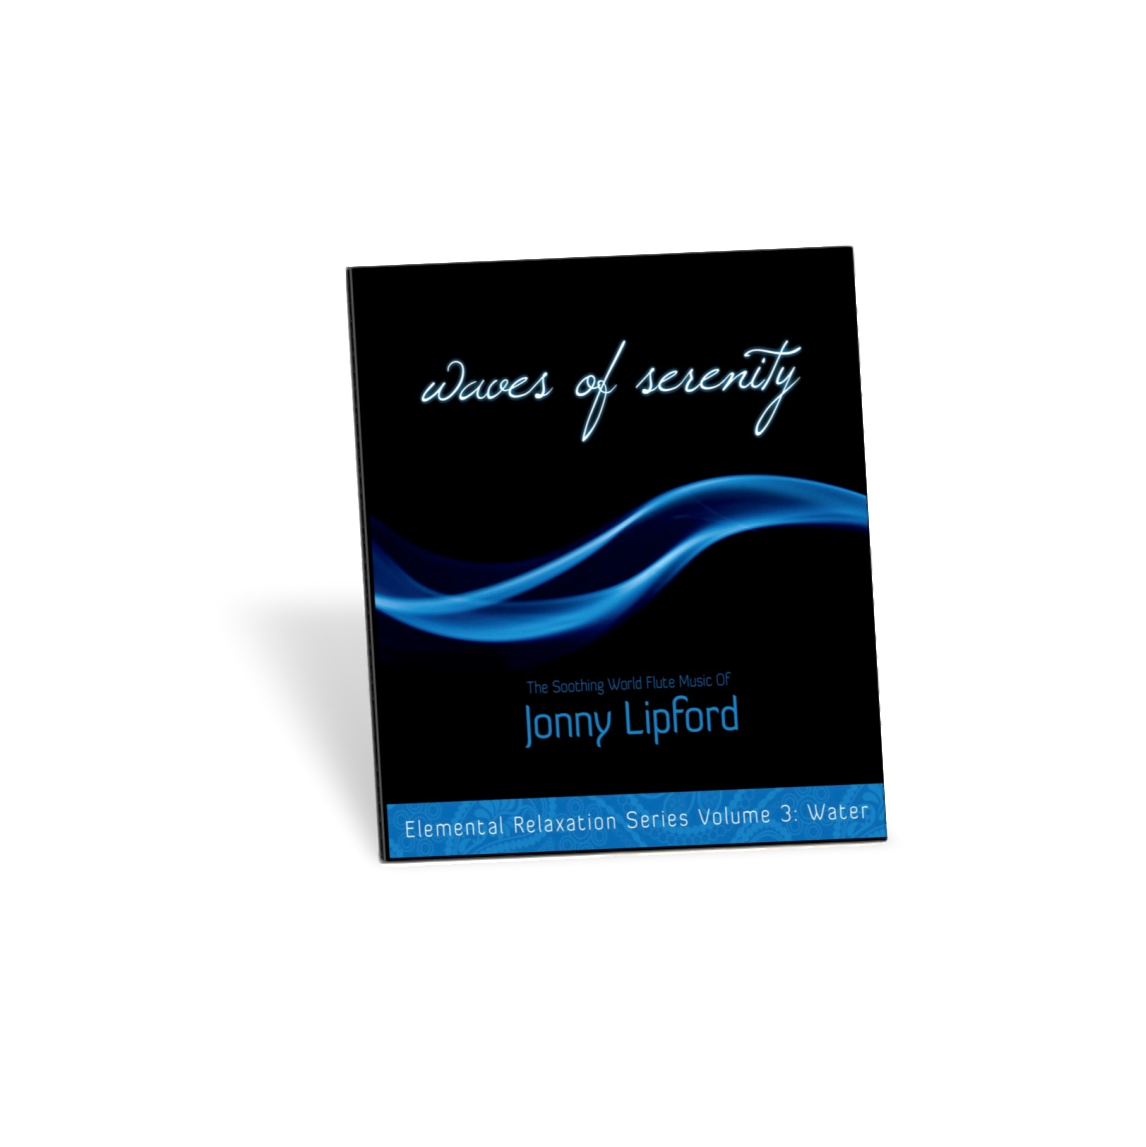 Waves of Serenity CD